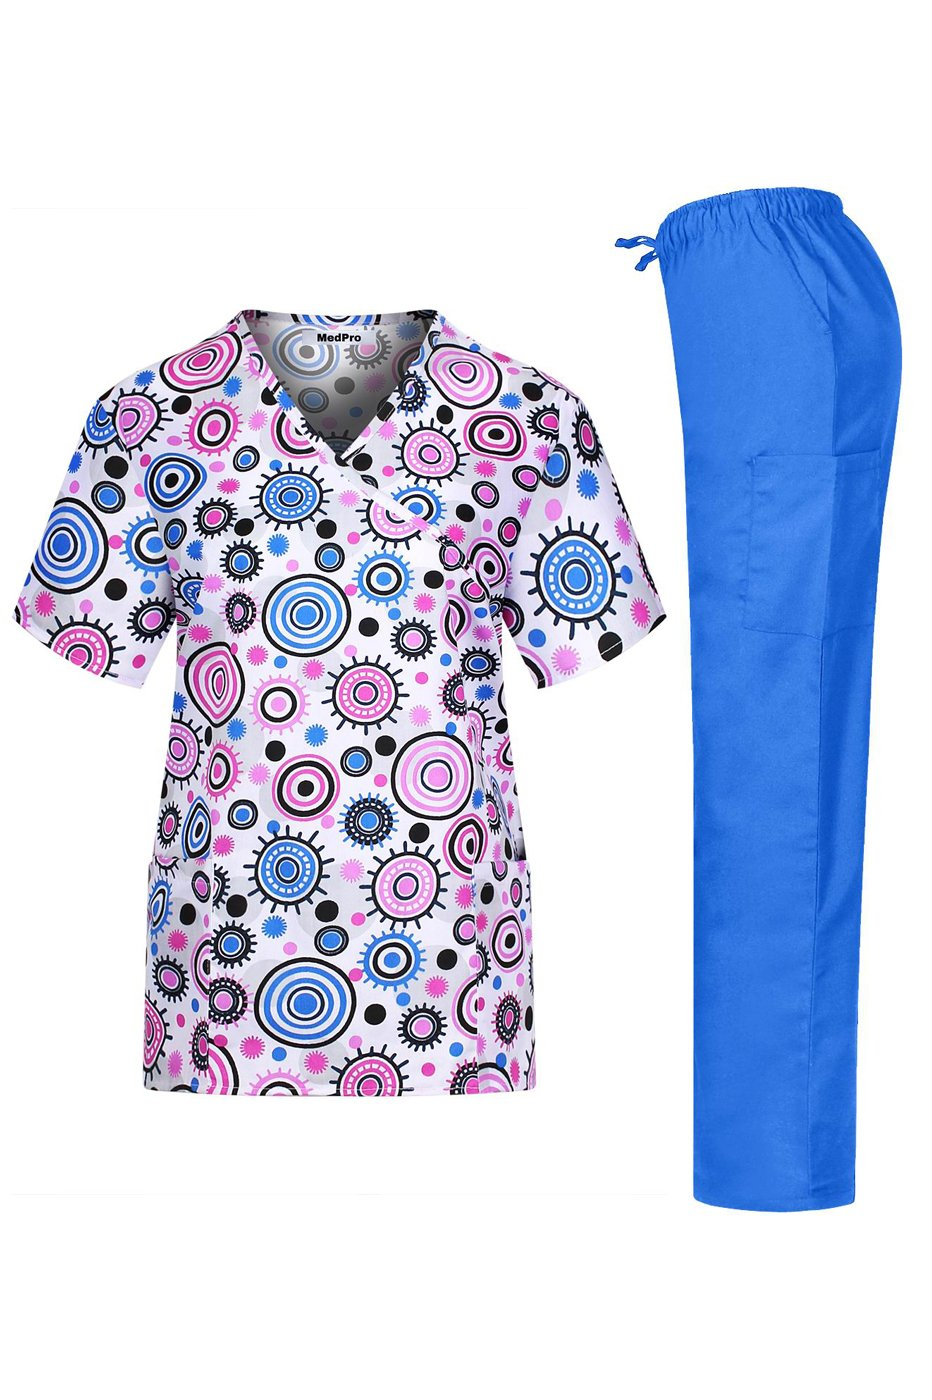 MedPro Women's Medical Scrub Set with Printed Top and Cargo Pants Pink Blue M